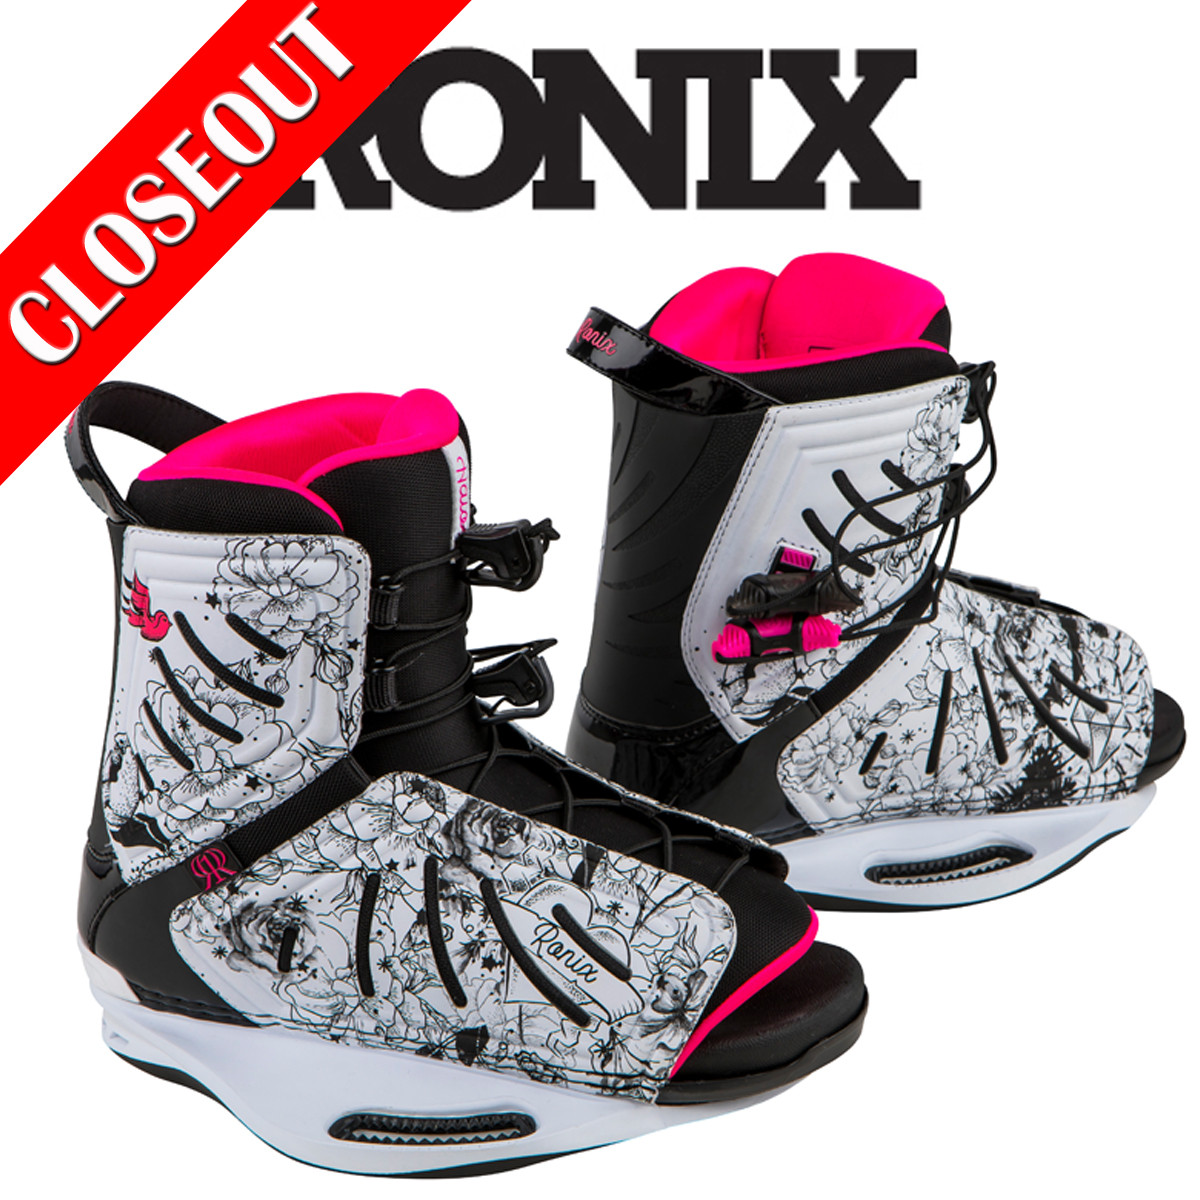 Ronix Halo Wakeboard Bindings For The Lowest Price At